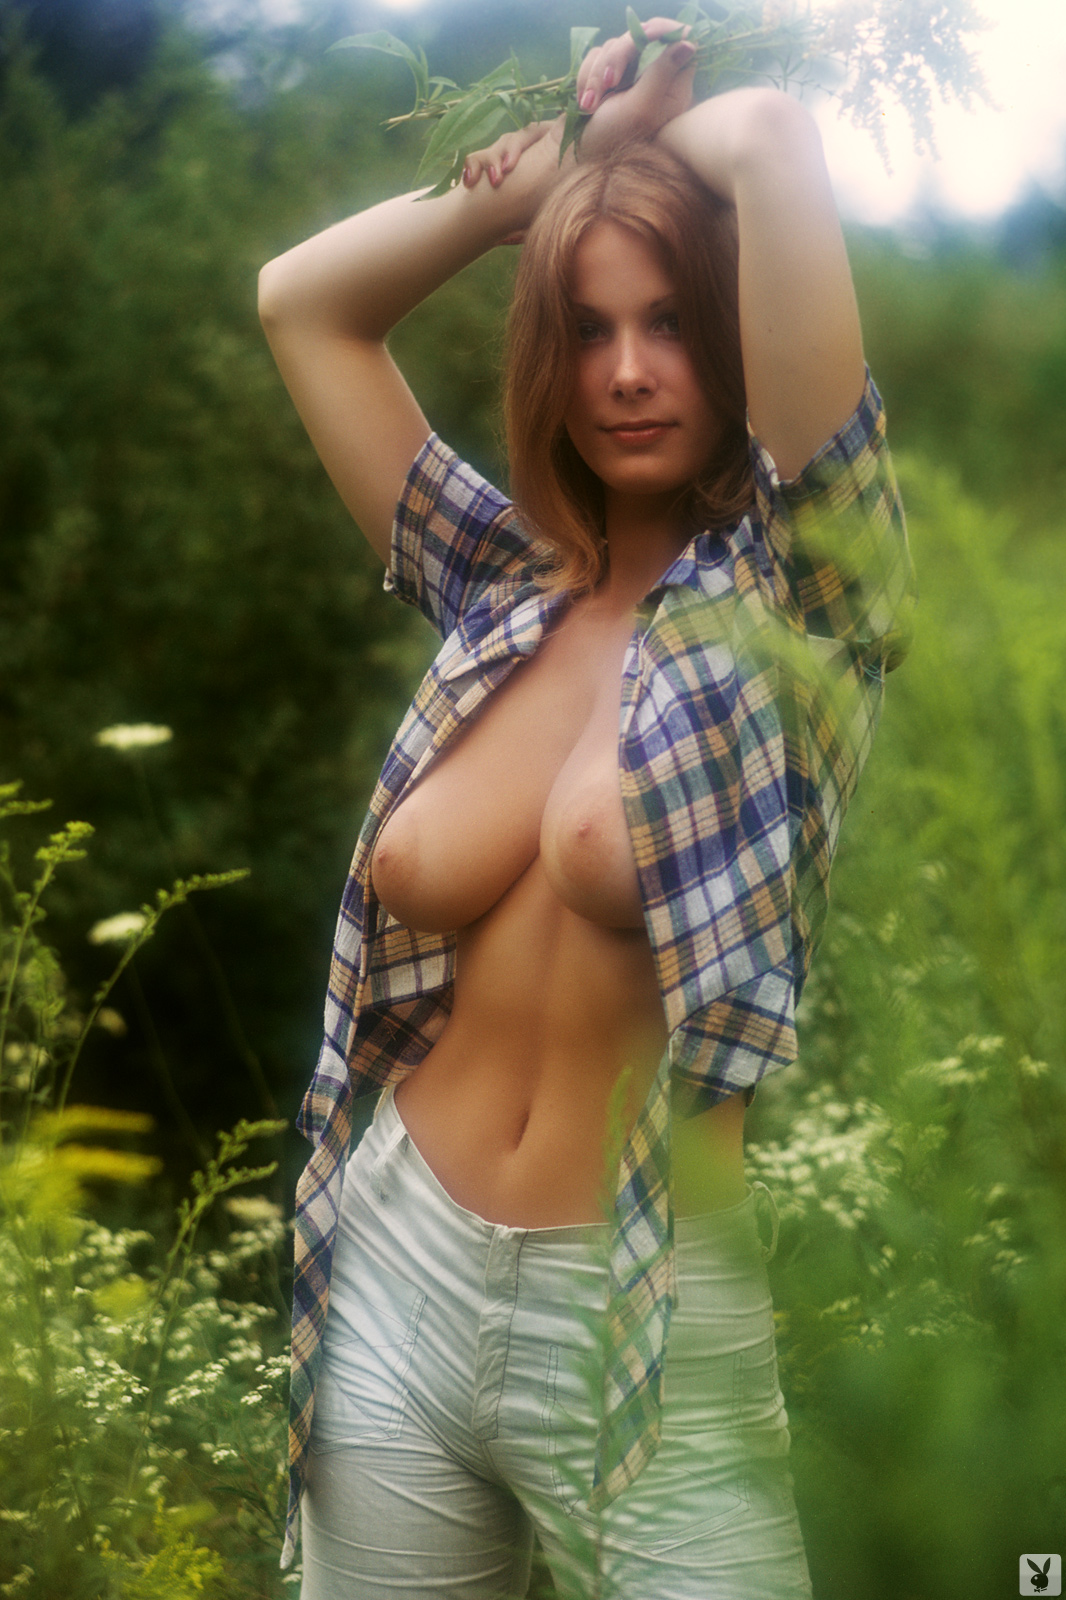 image These breasts needs no introduction Part 6